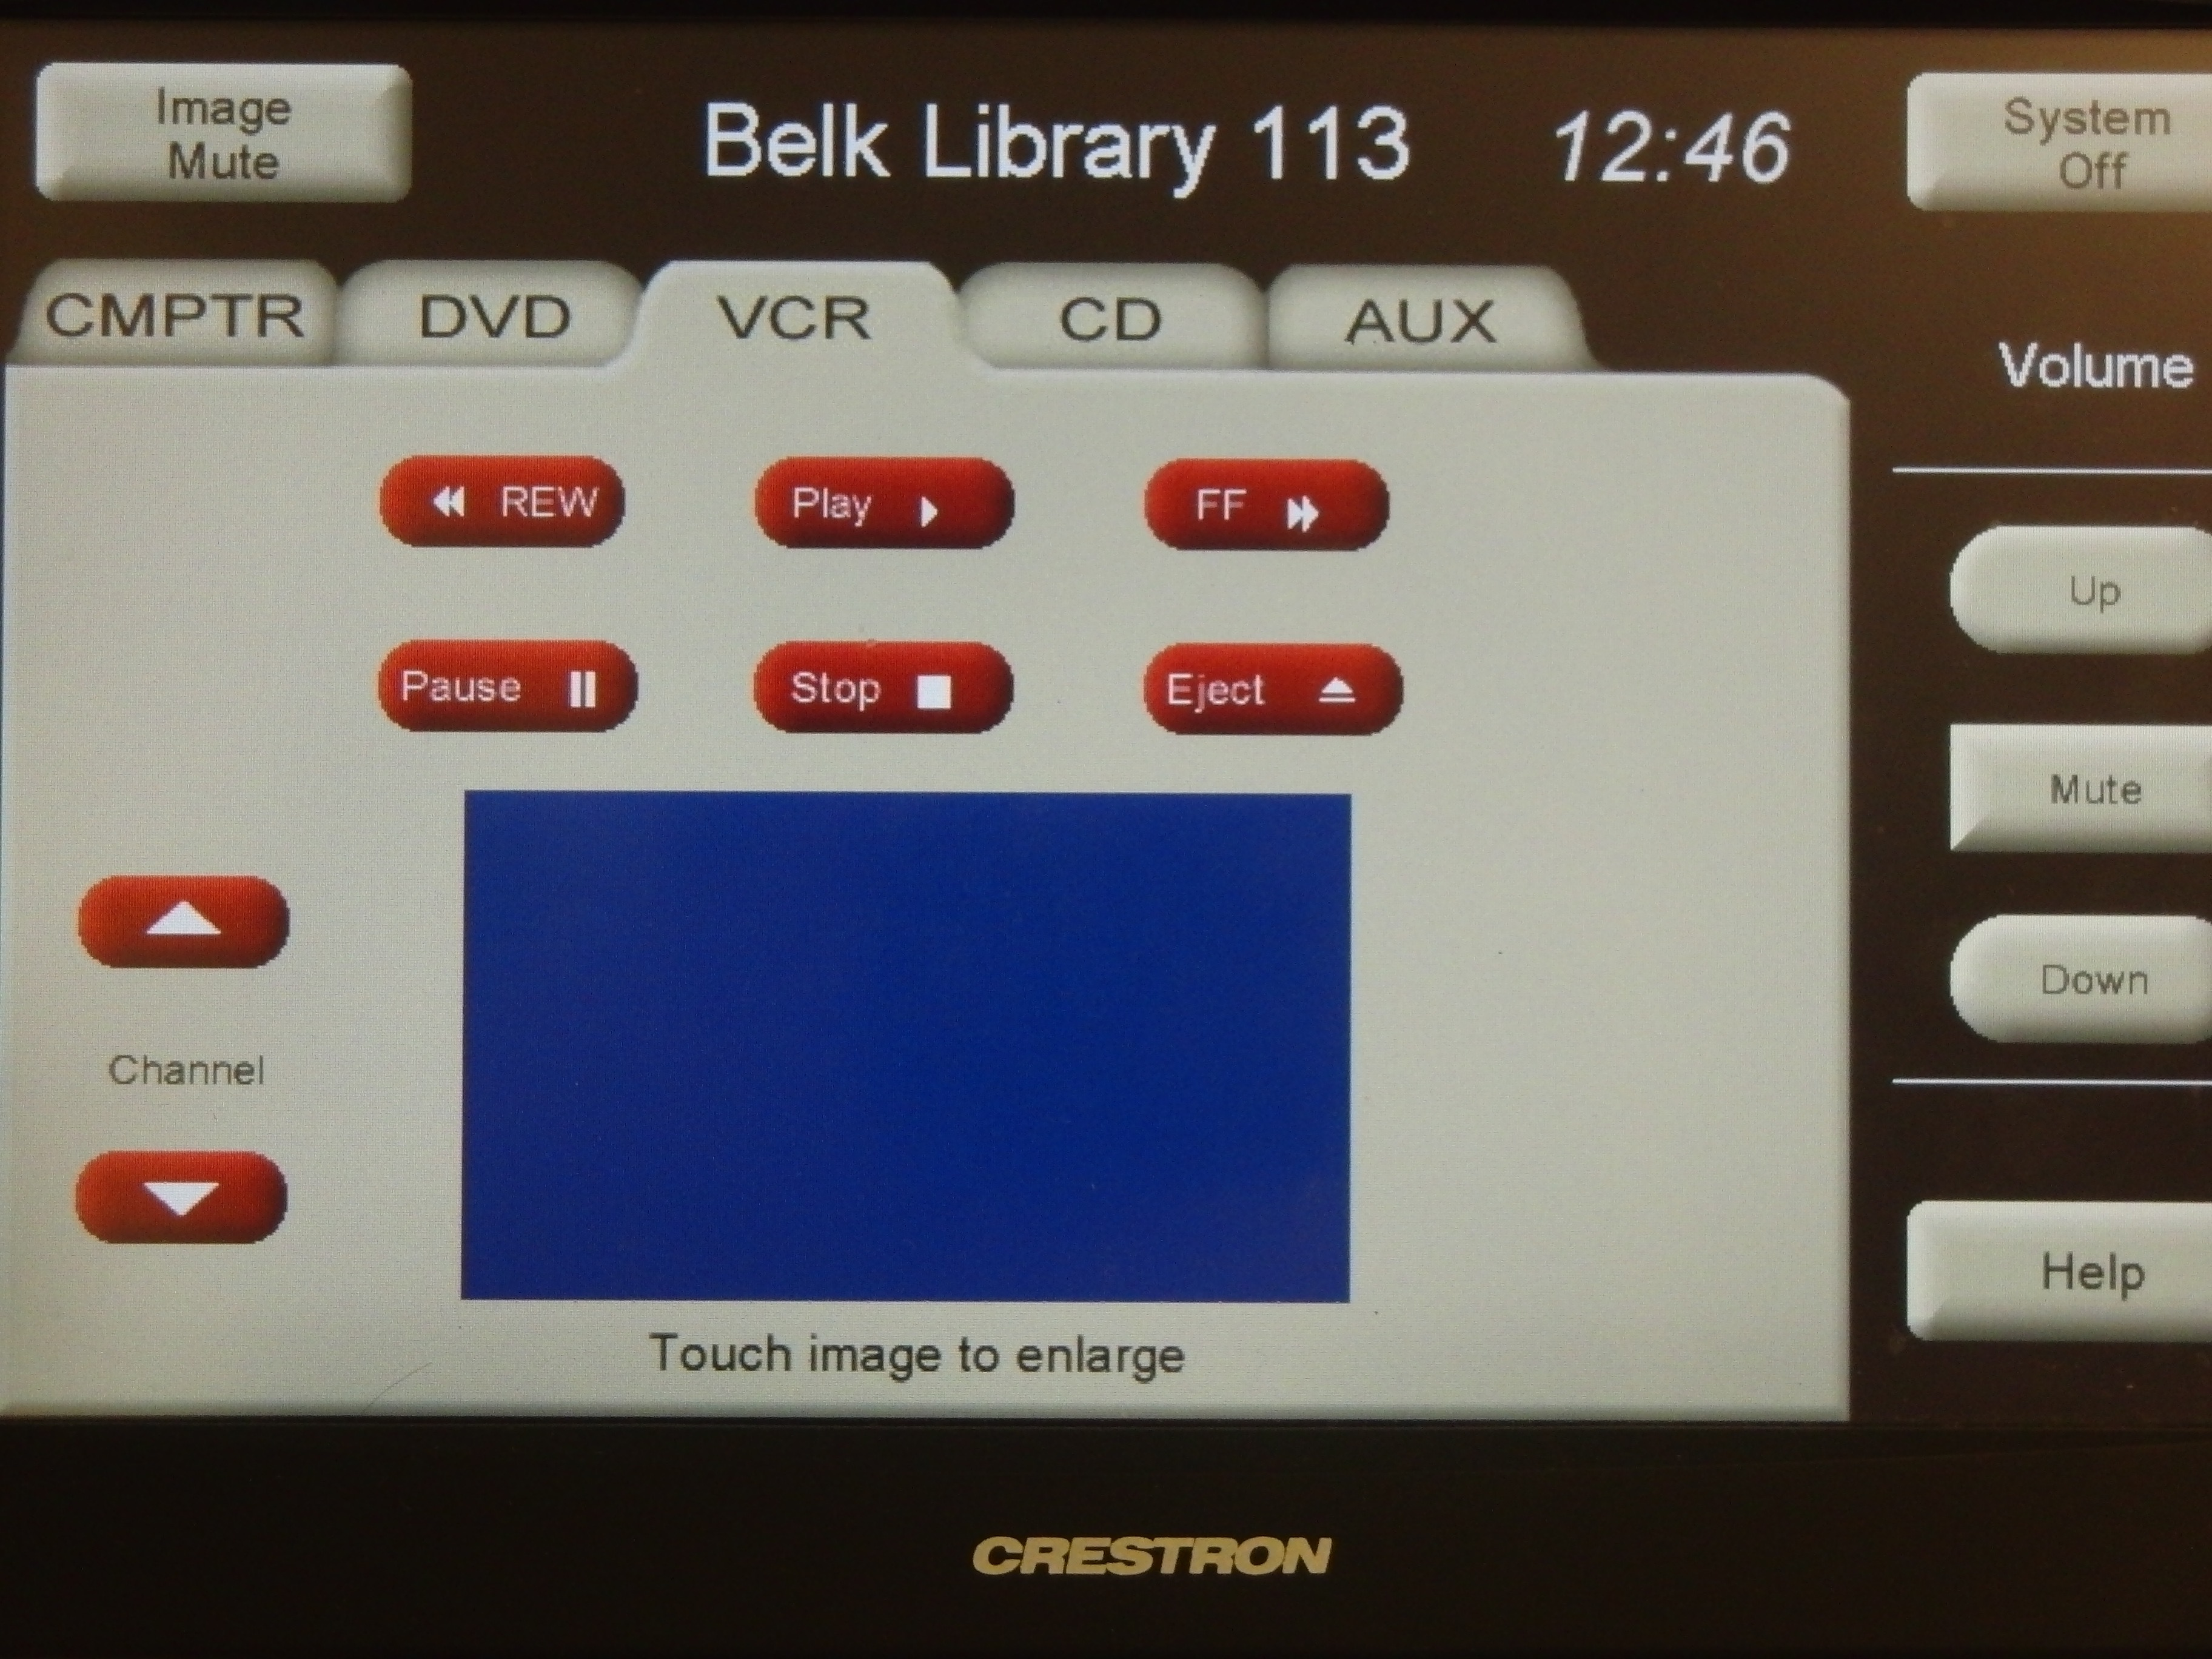 A photo of the screen under the VCR tab on the touch panel.